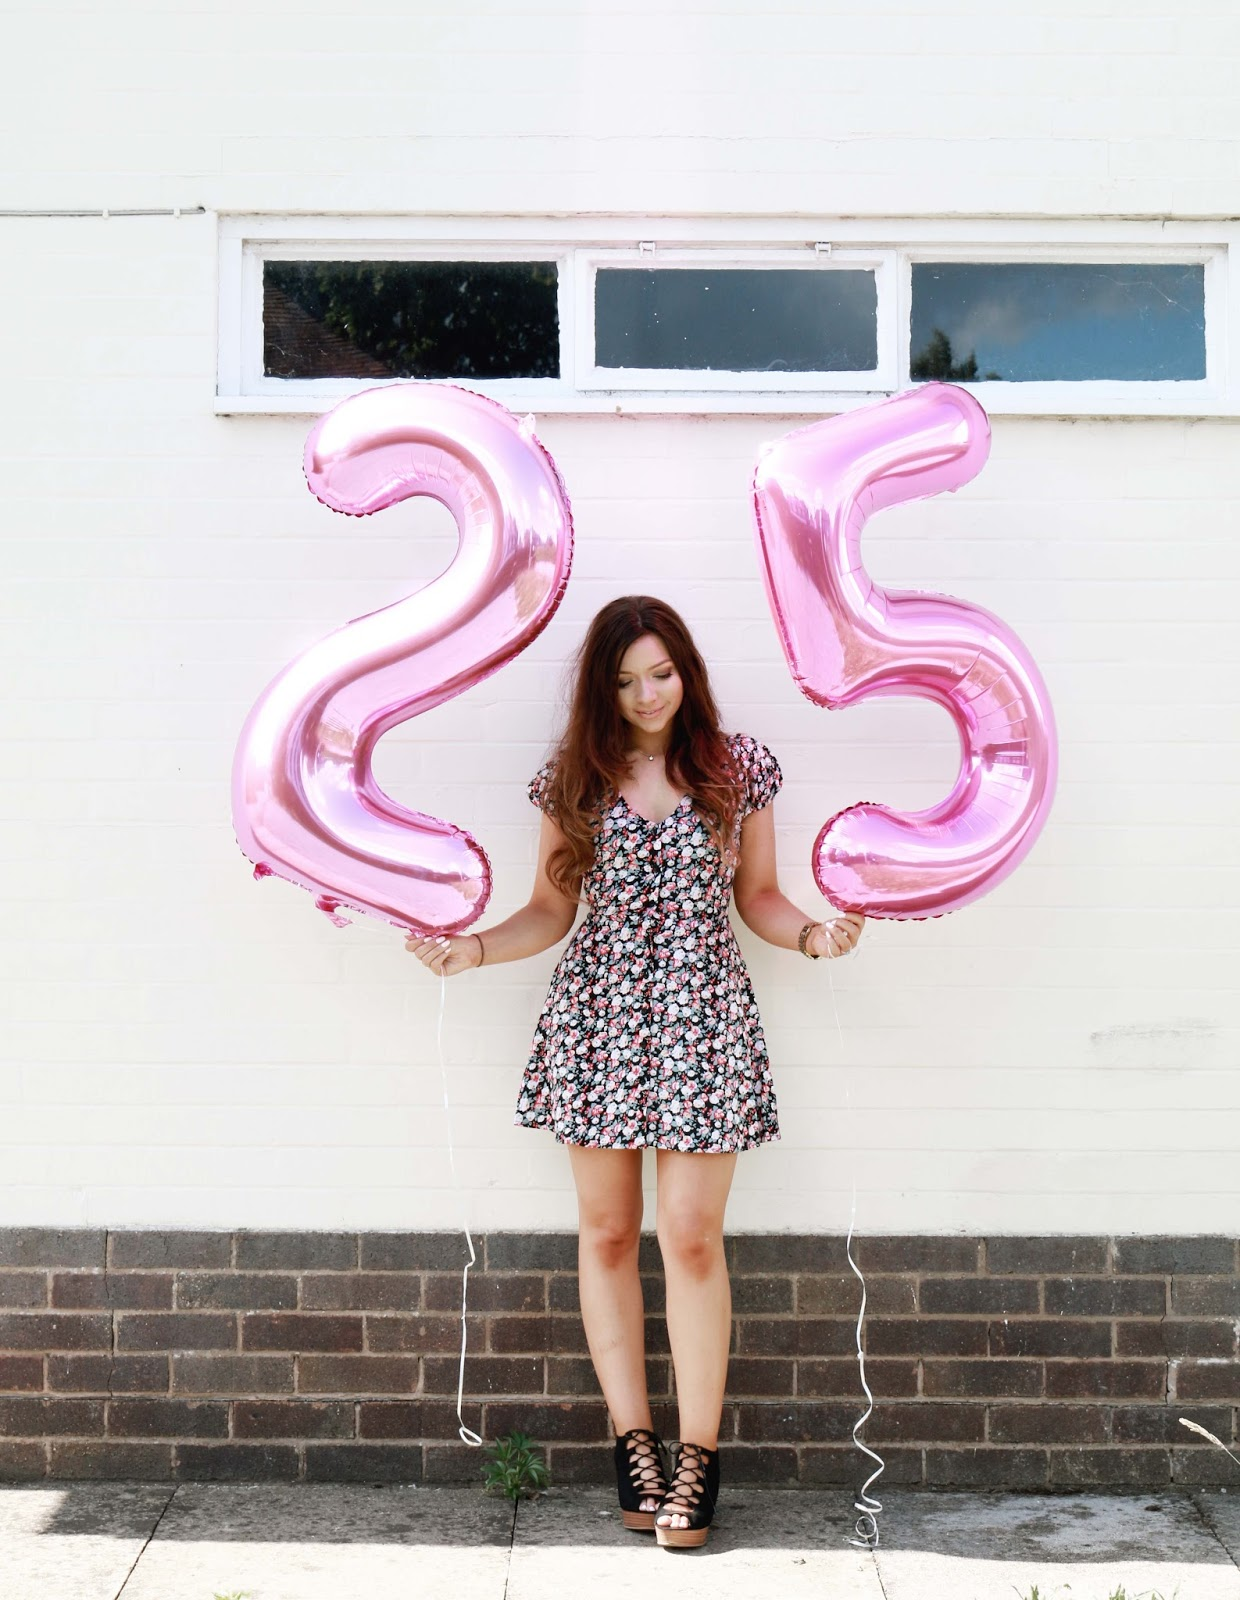 lifestyle, 25 Things I learnt before I was 25, 25 things, life lessons, life advice, quarter life crisis, dizzybrunette3, number balloons, birthday, turning 25,